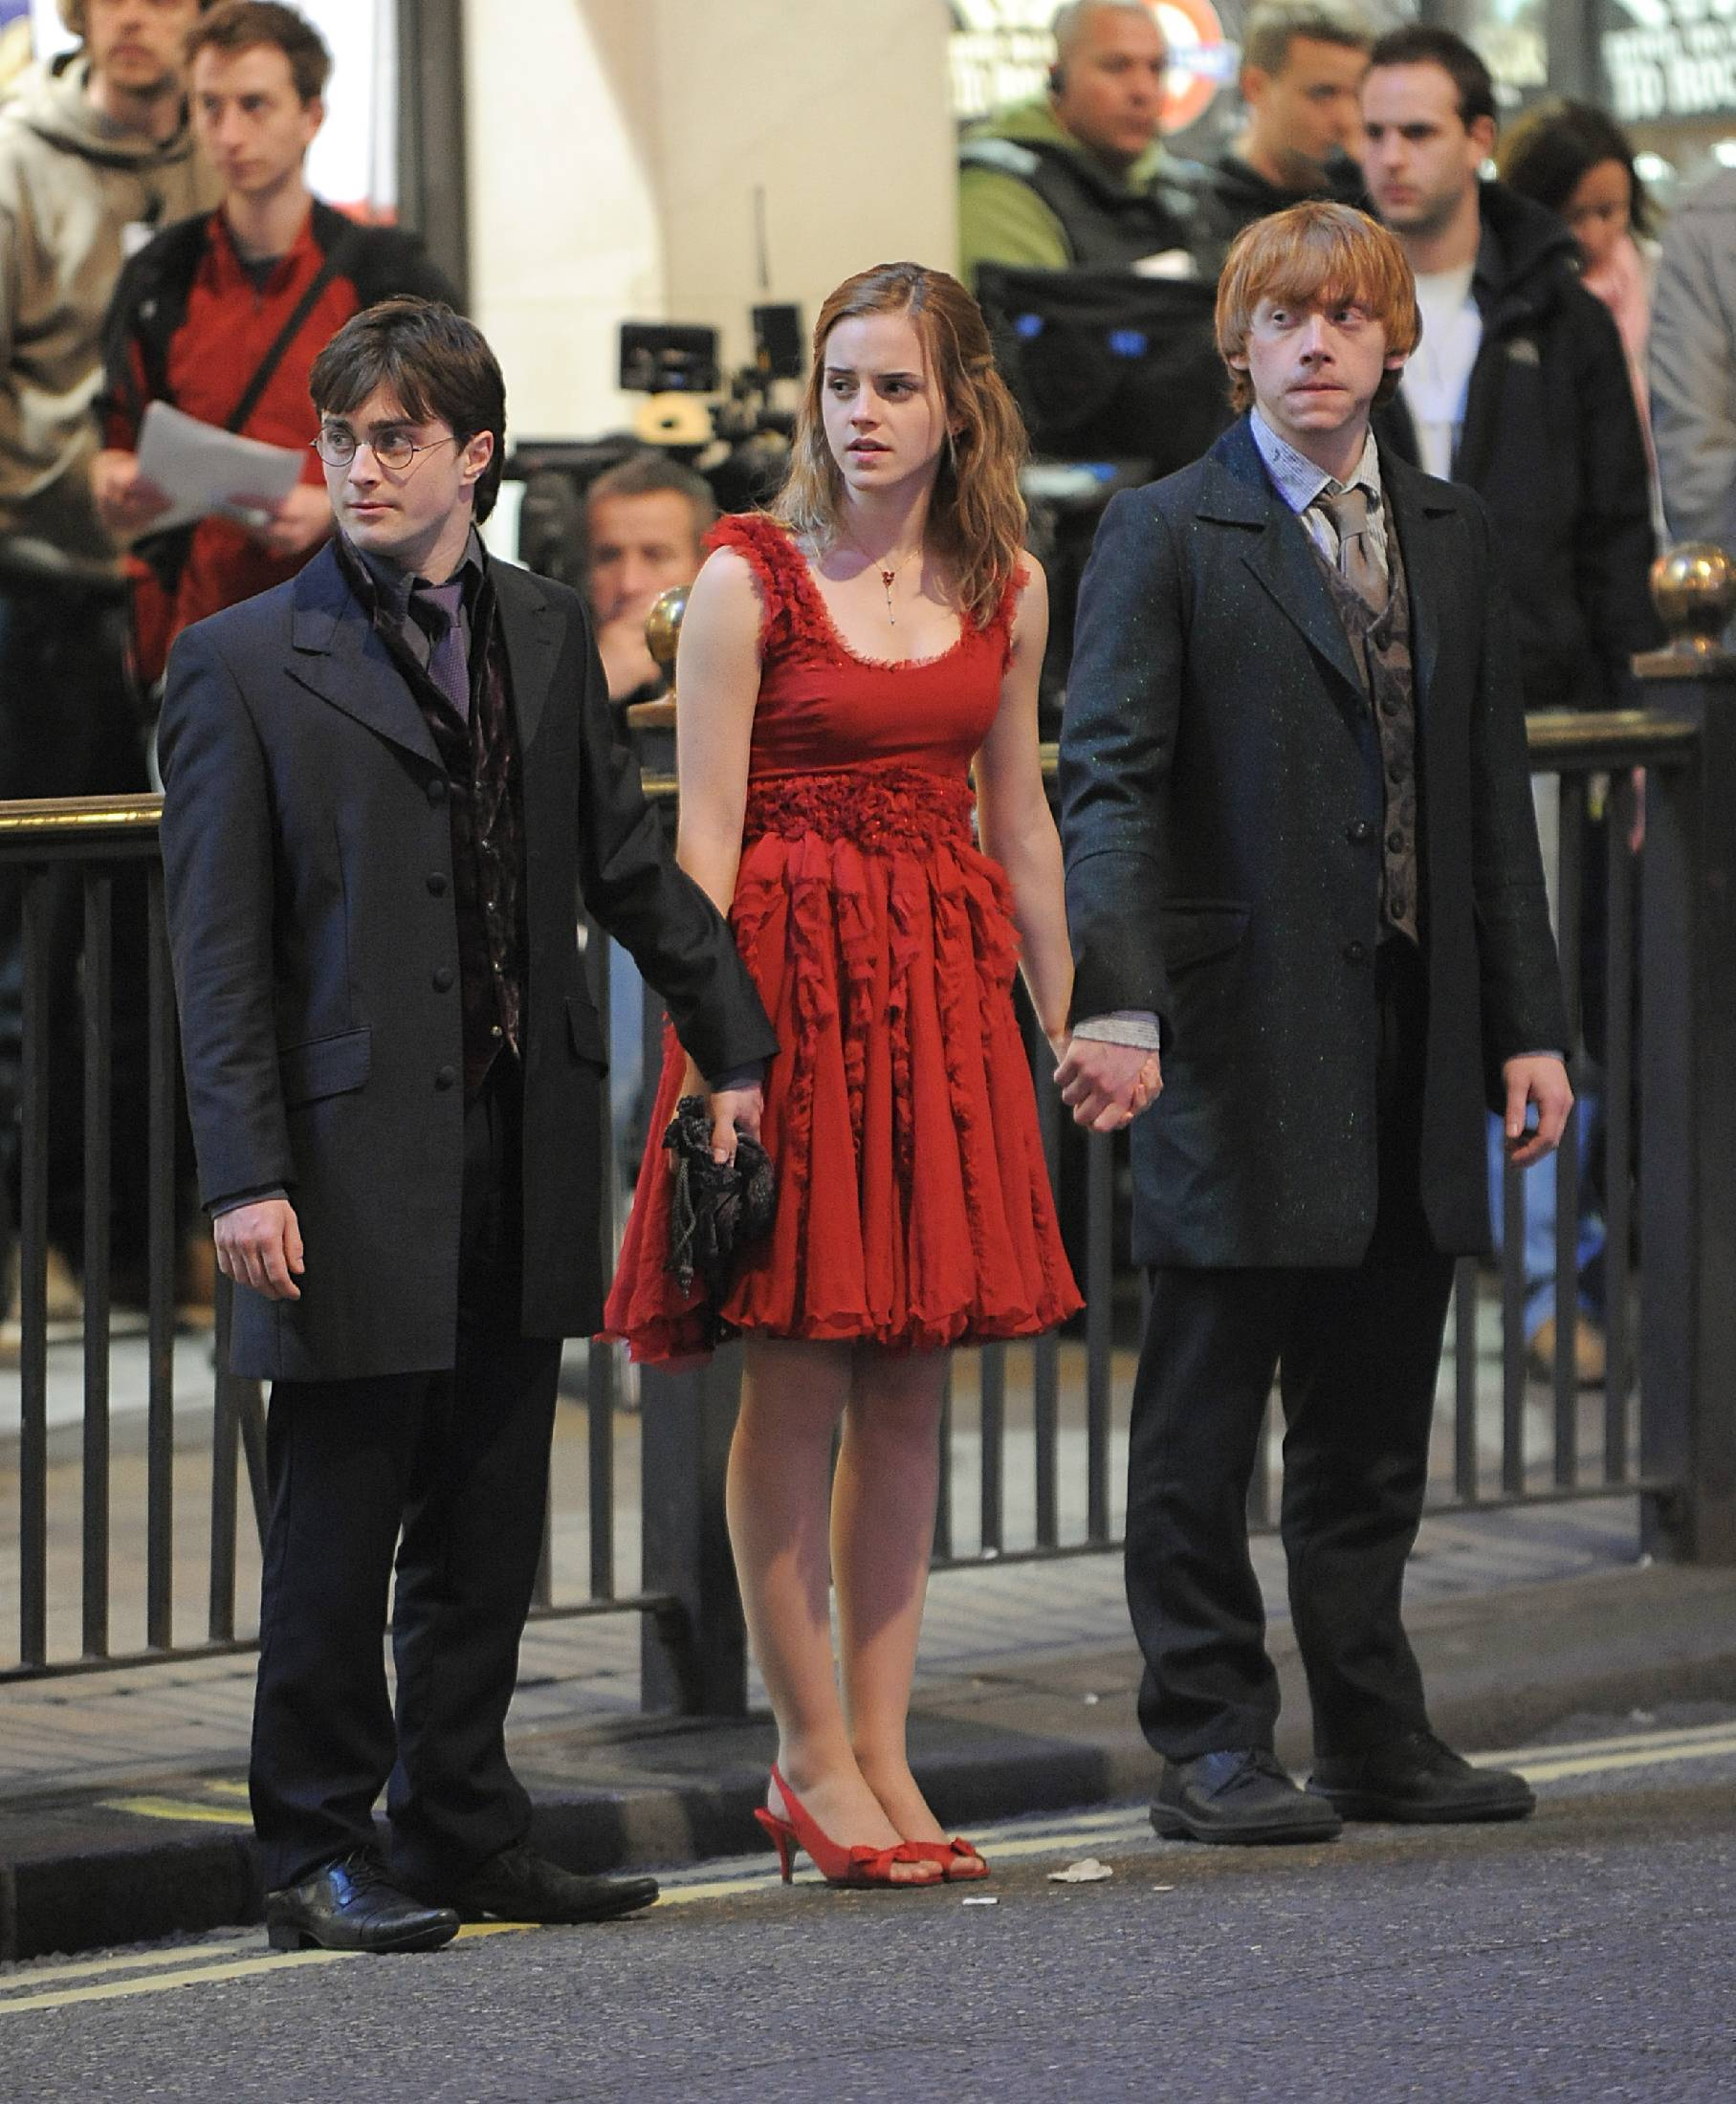 http://images2.fanpop.com/images/photos/6000000/emma-rupert-and-dan-rupert-grint-and-emma-watson-6016696-1815-2200.jpg